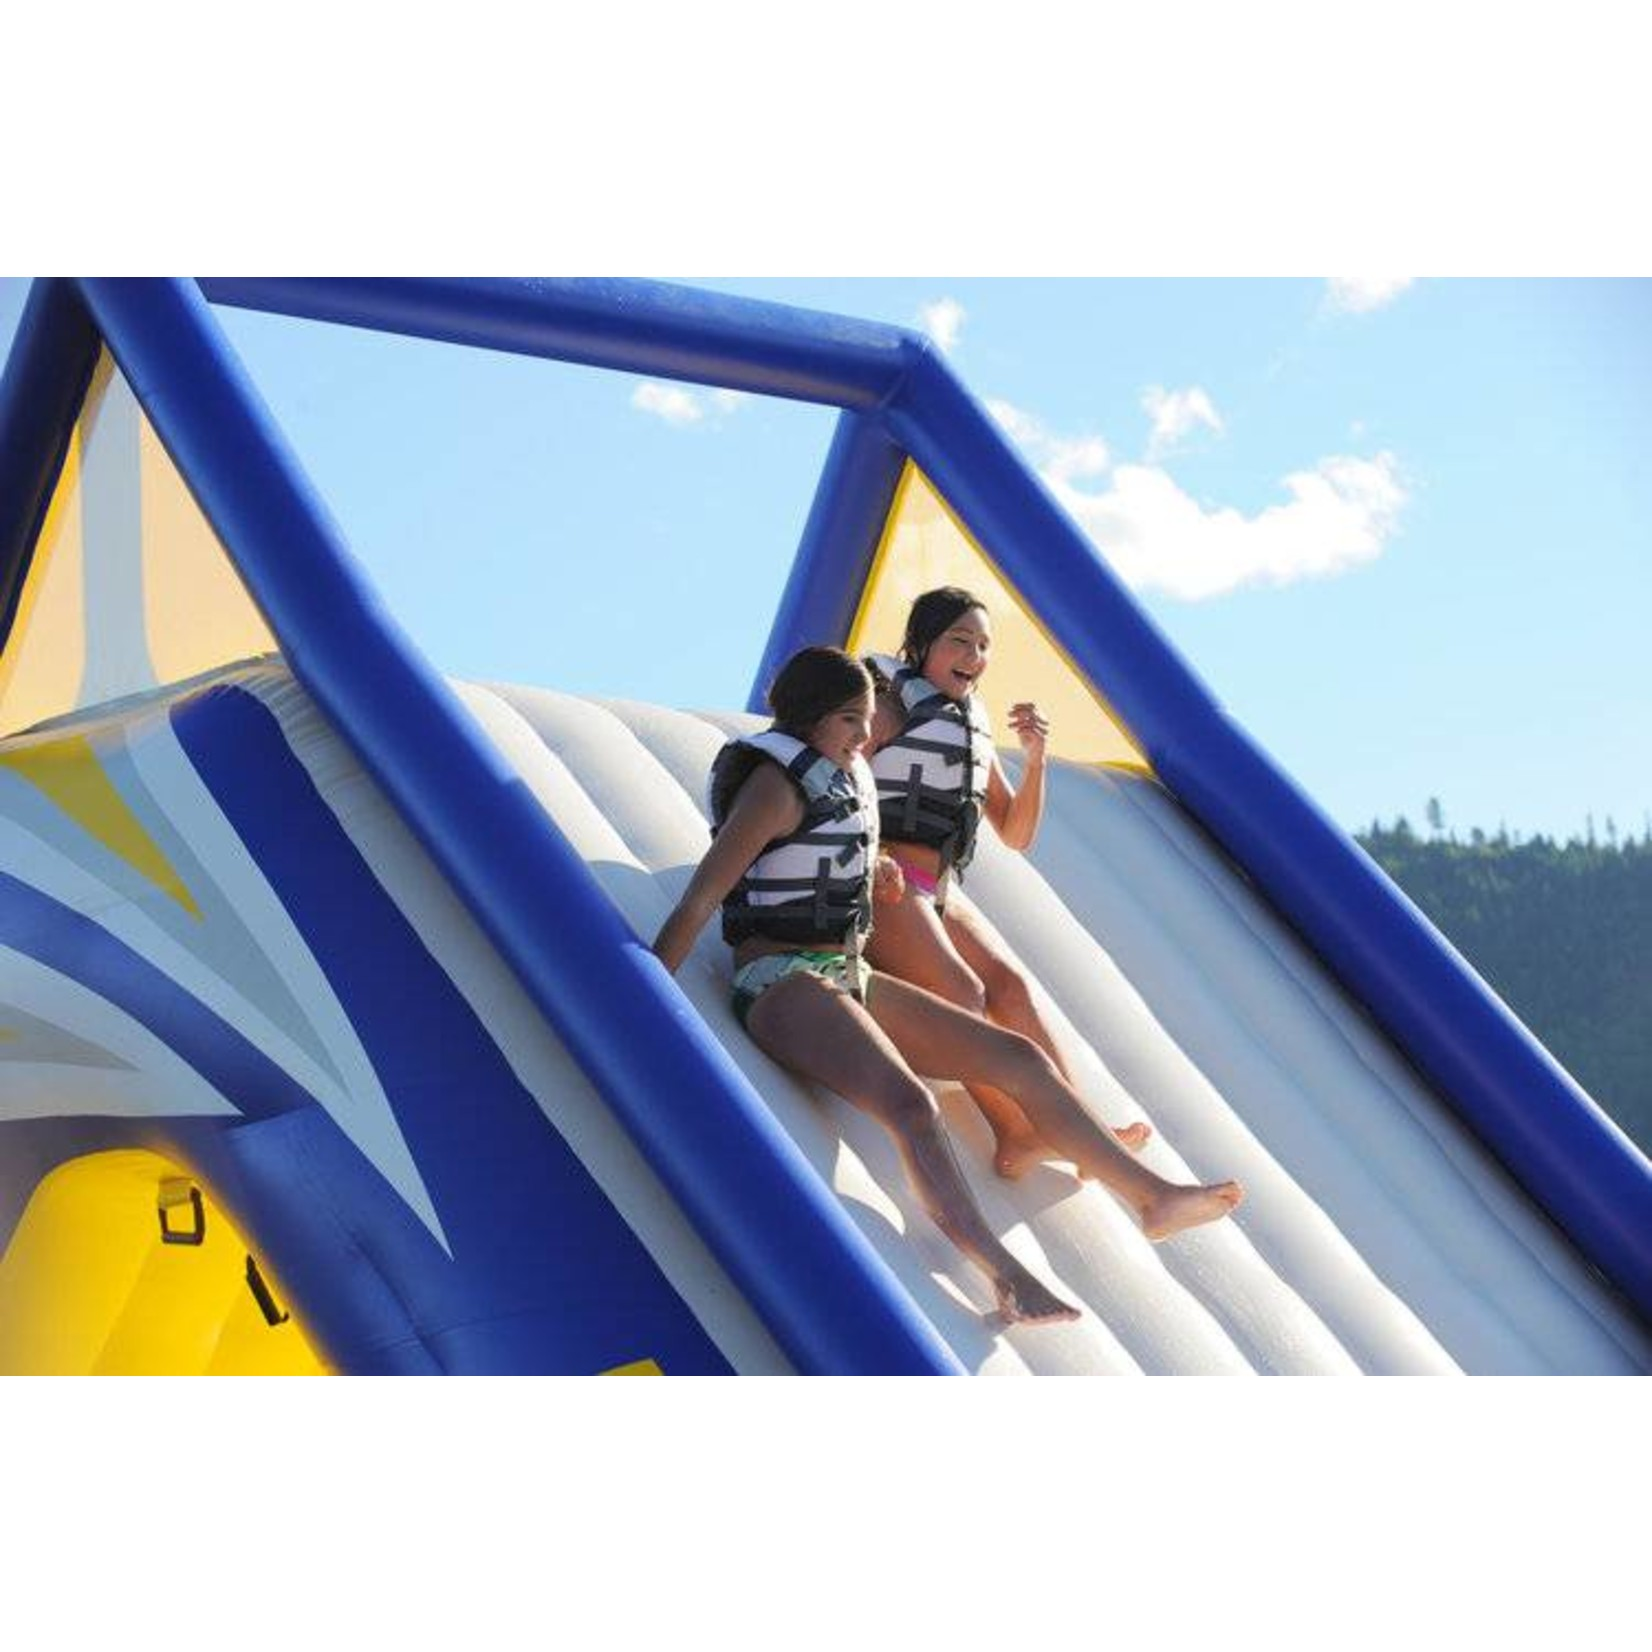 Aquaglide  Summit Express - Big slide